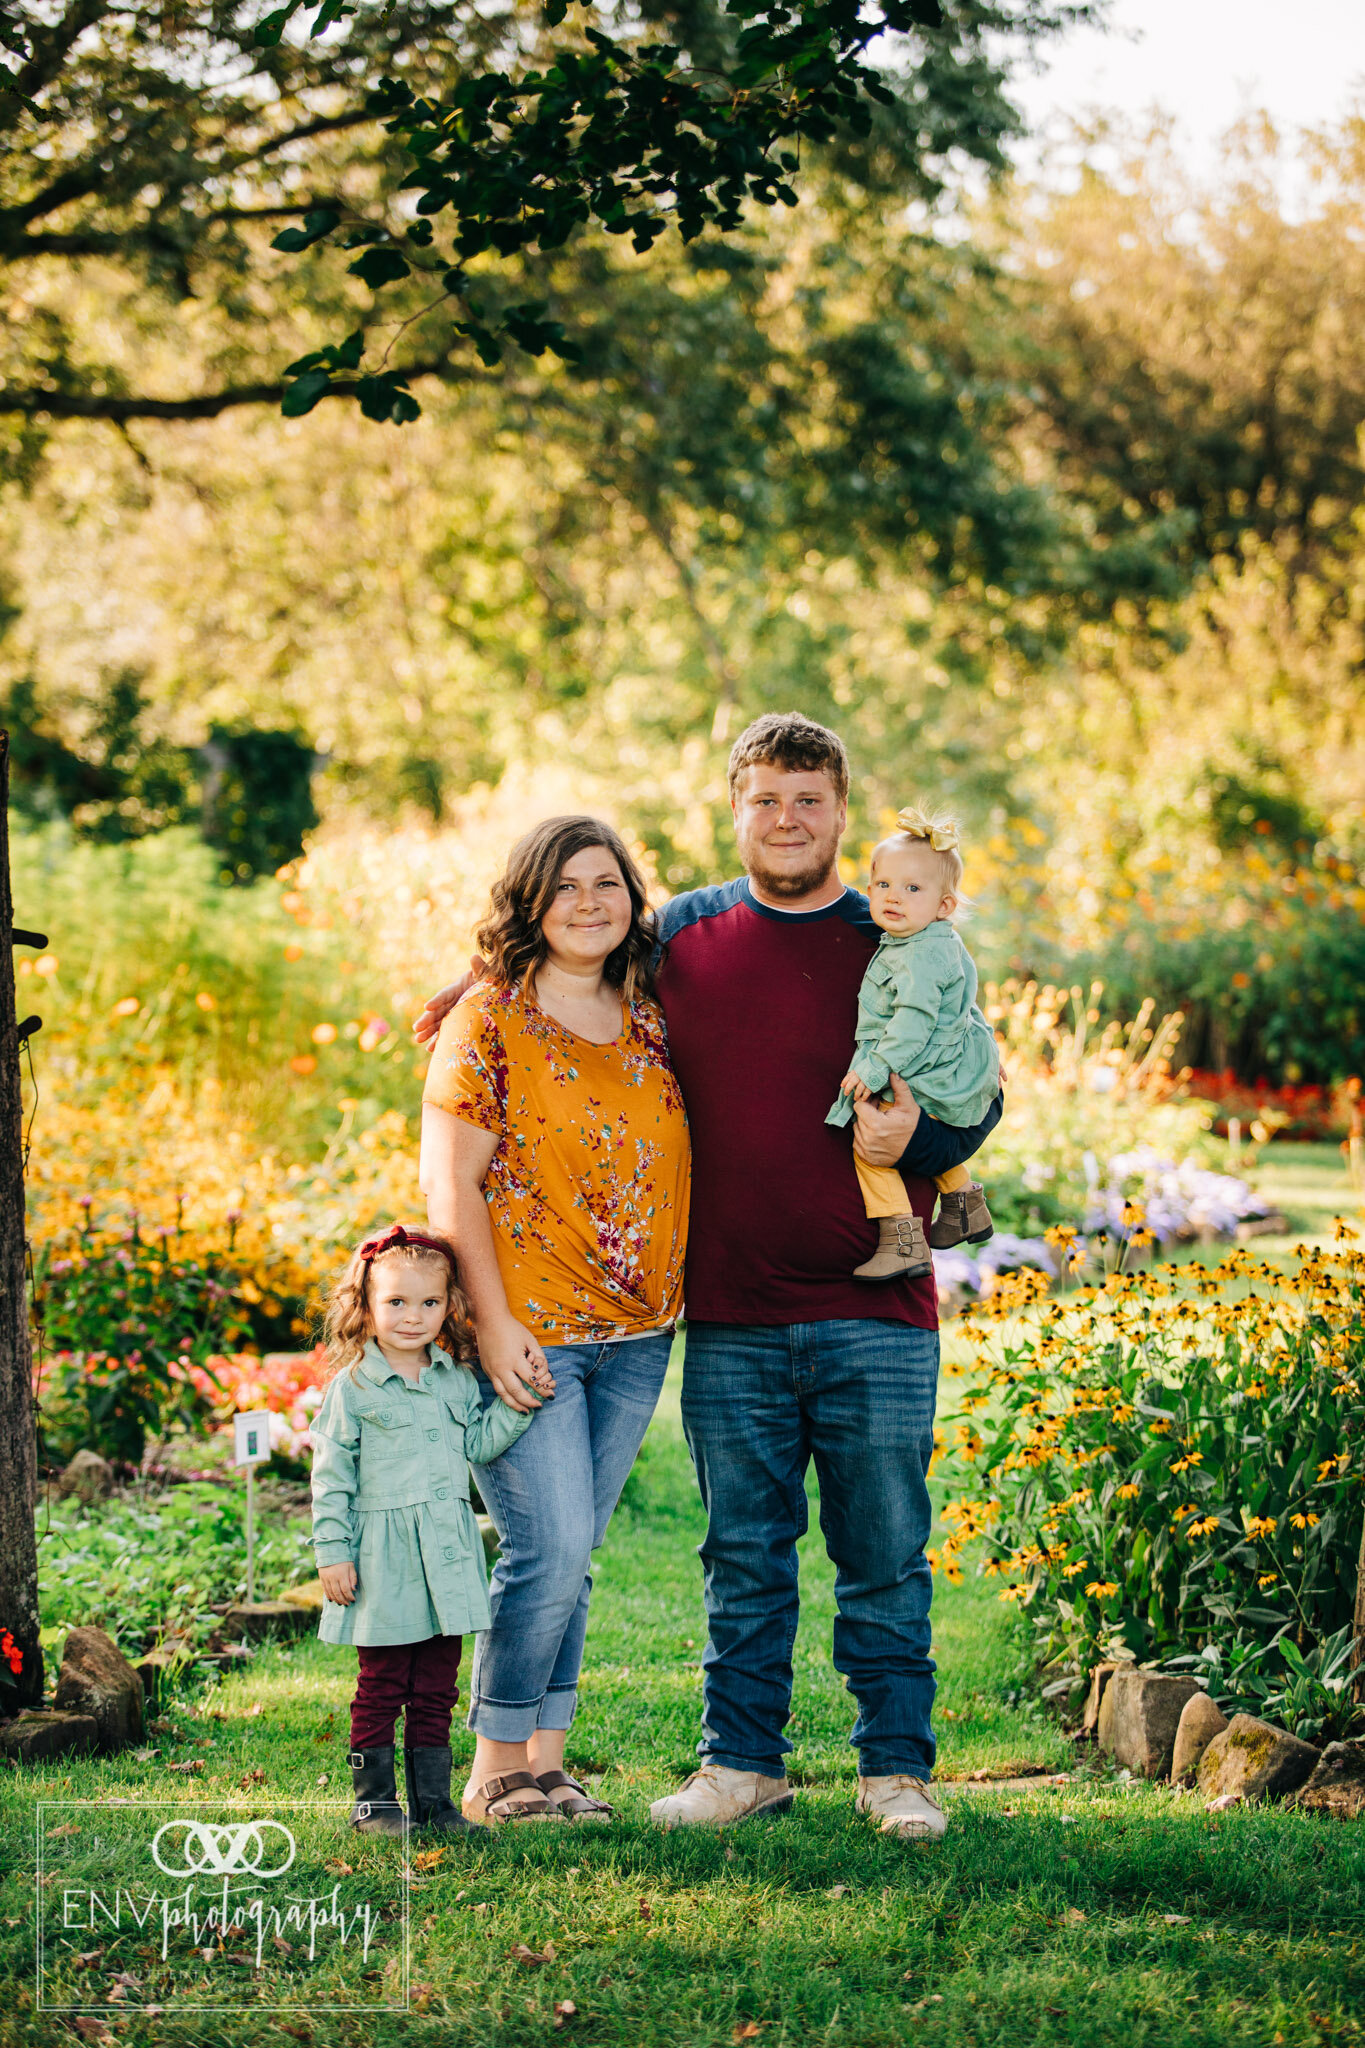 Mount Vernon Columbus Ohio Knox County Ohio Family Photographer (4).jpg